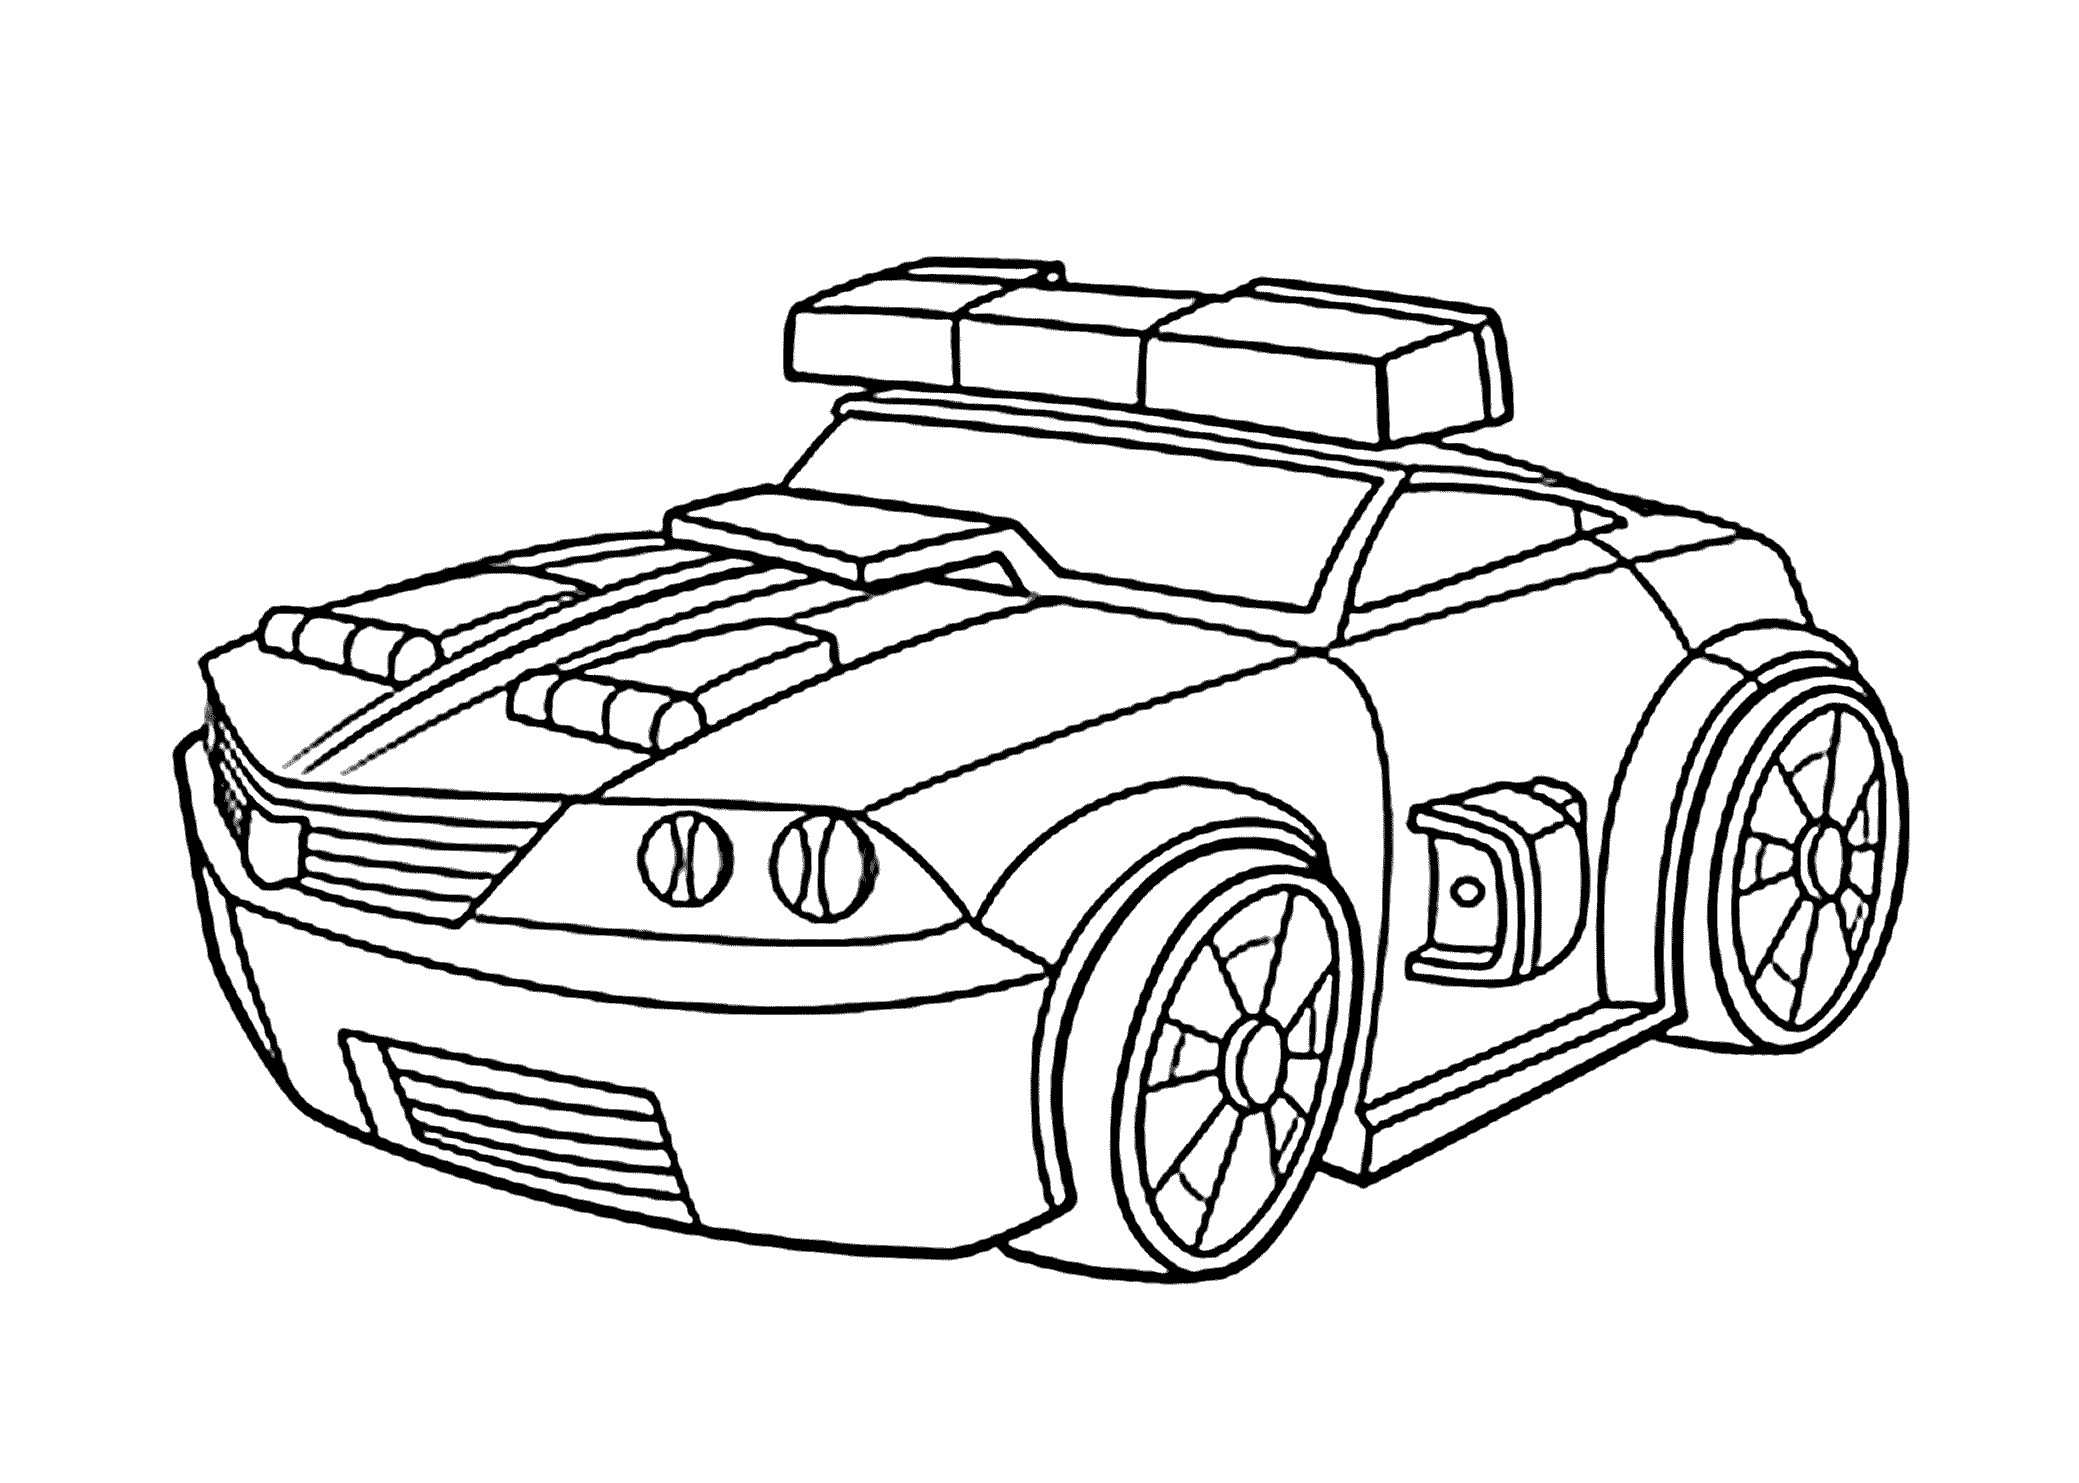 28 Rescue Bots Coloring Pages Selection Free Coloring Pages